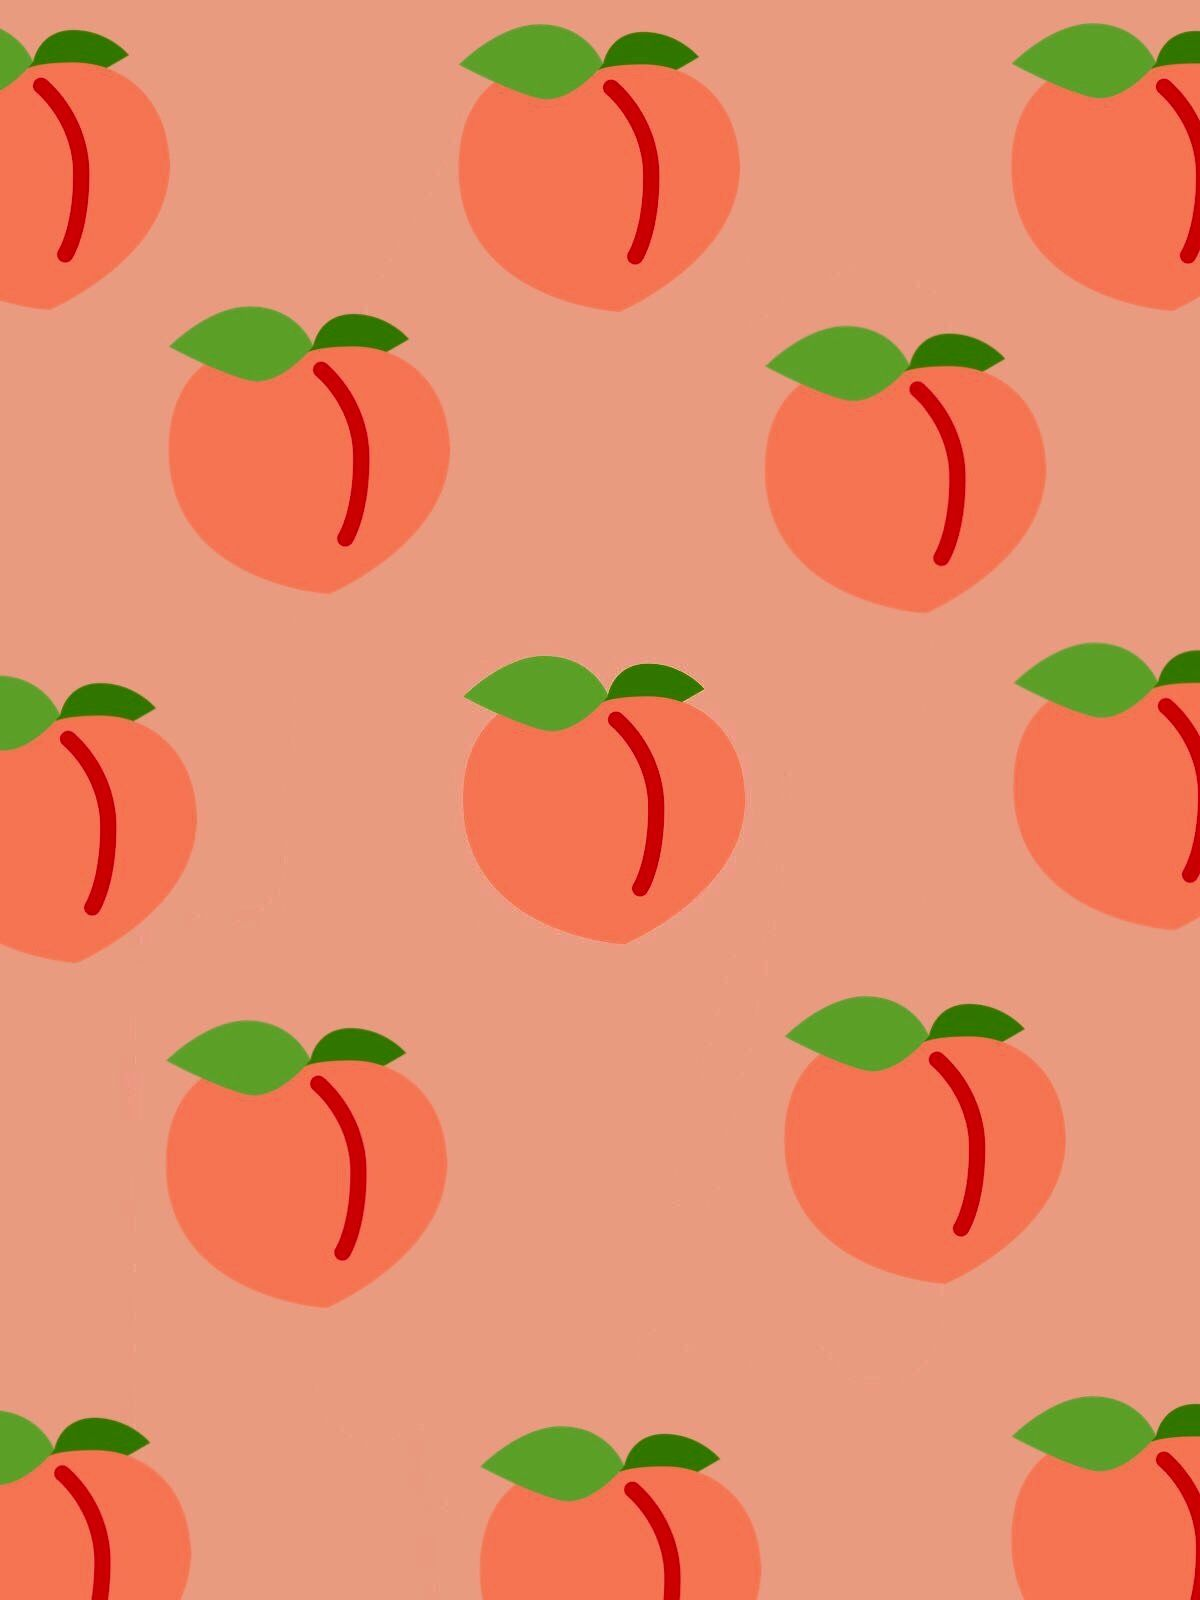 Fruit Aesthetic Wallpapers On Wallpaperdog Tons of awesome orange aesthetic wallpapers to download for free. fruit aesthetic wallpapers on wallpaperdog